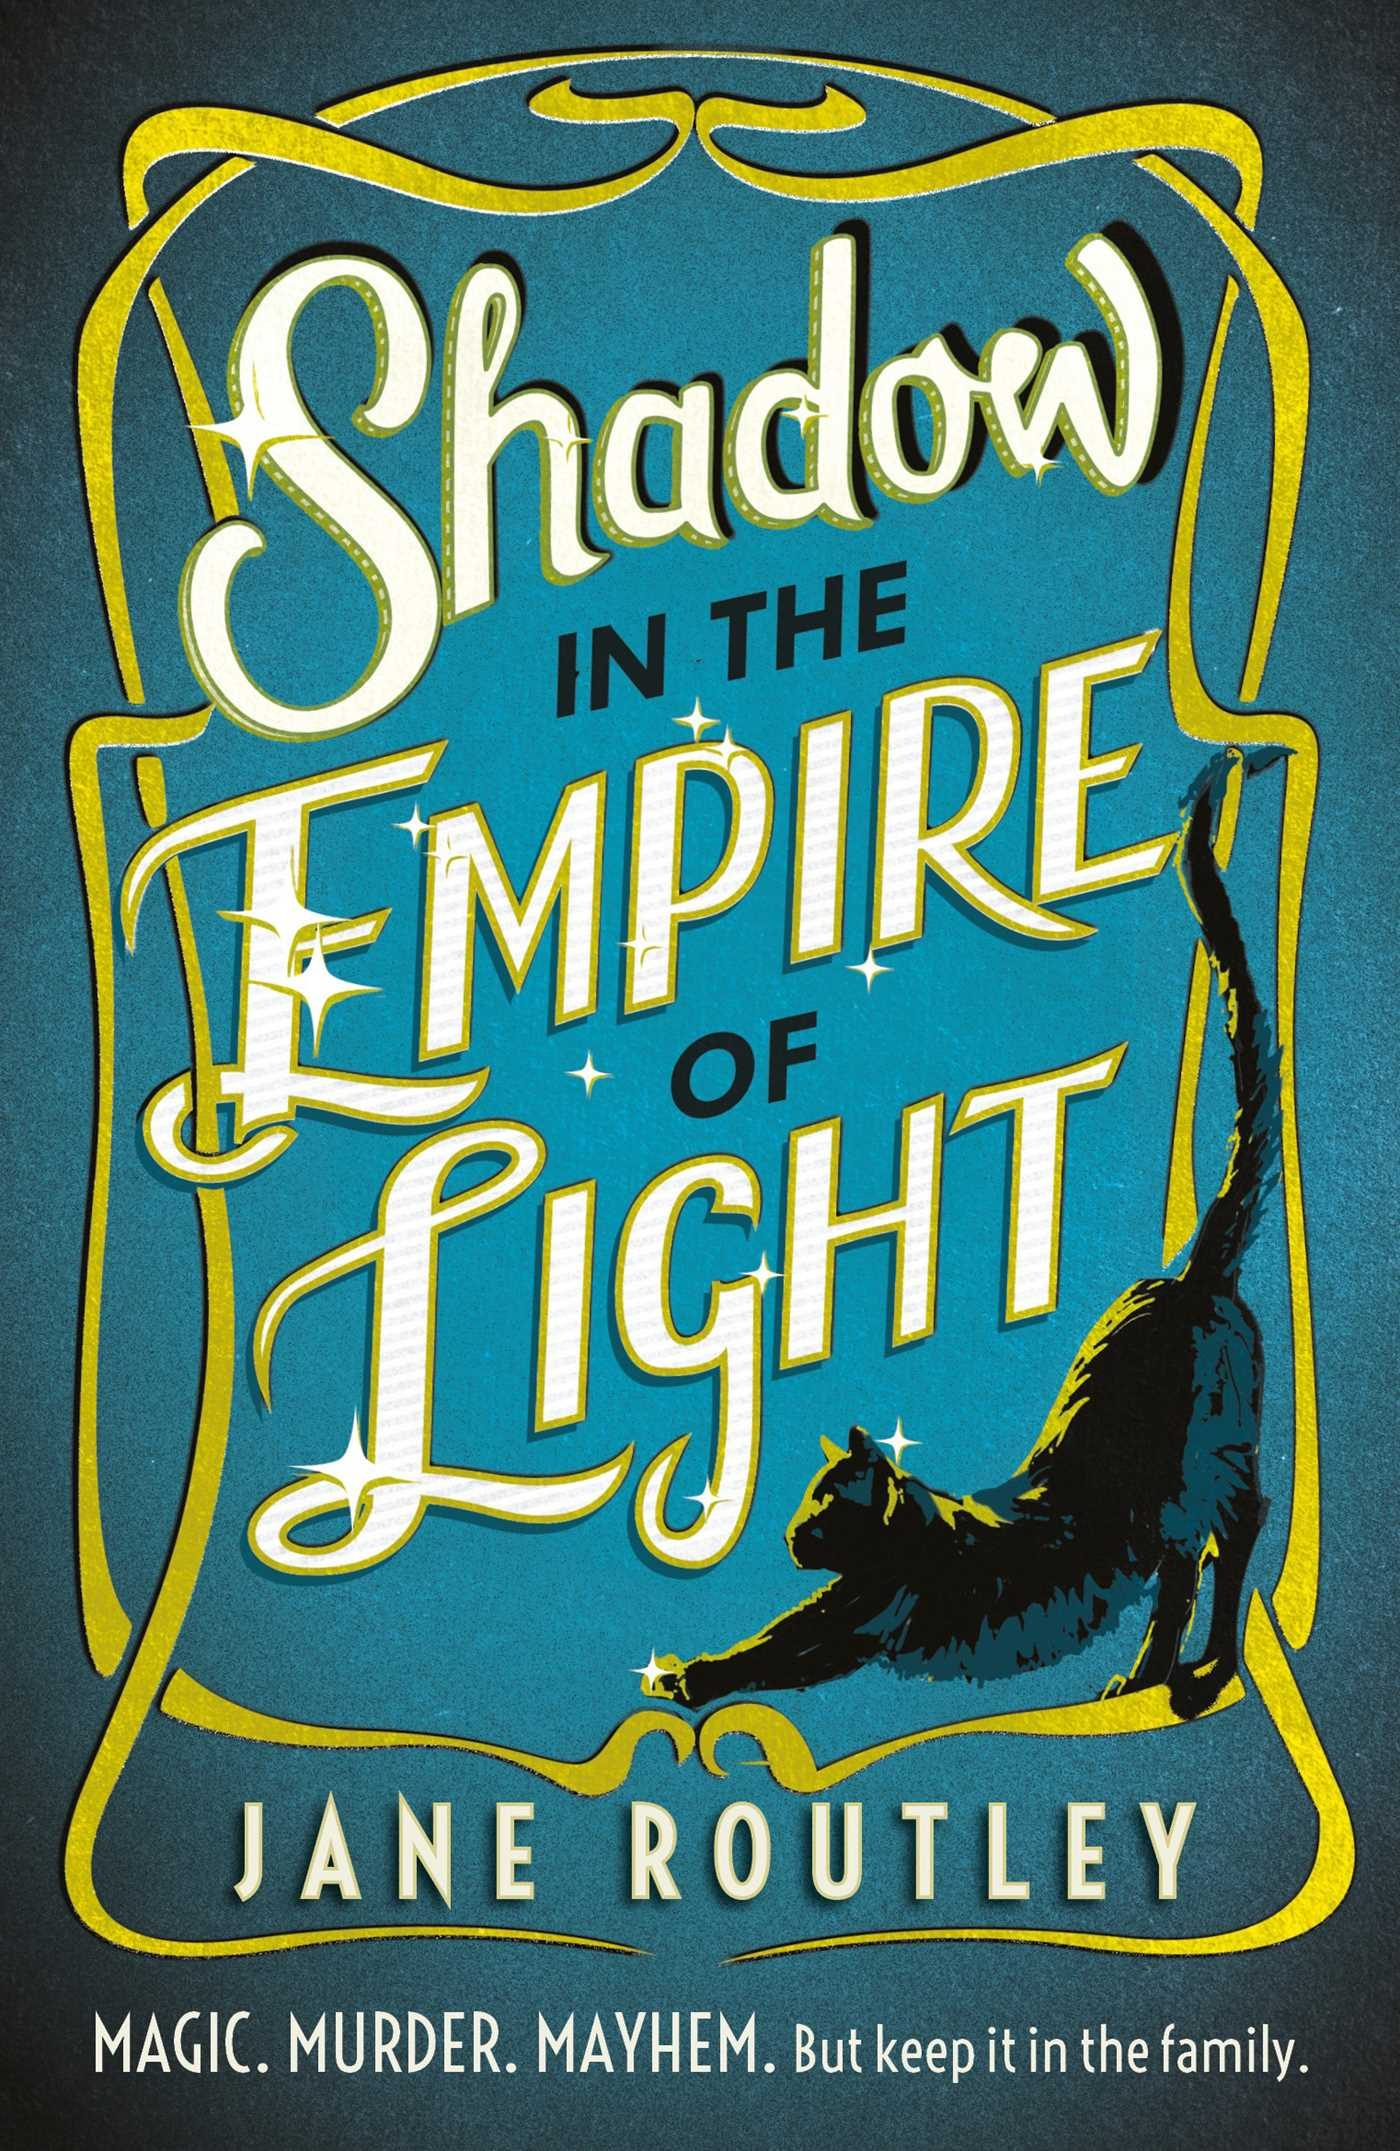 Shadow In The Empire Of Light By Jane Routley Release Date? 2021 YA Fantasy Releases